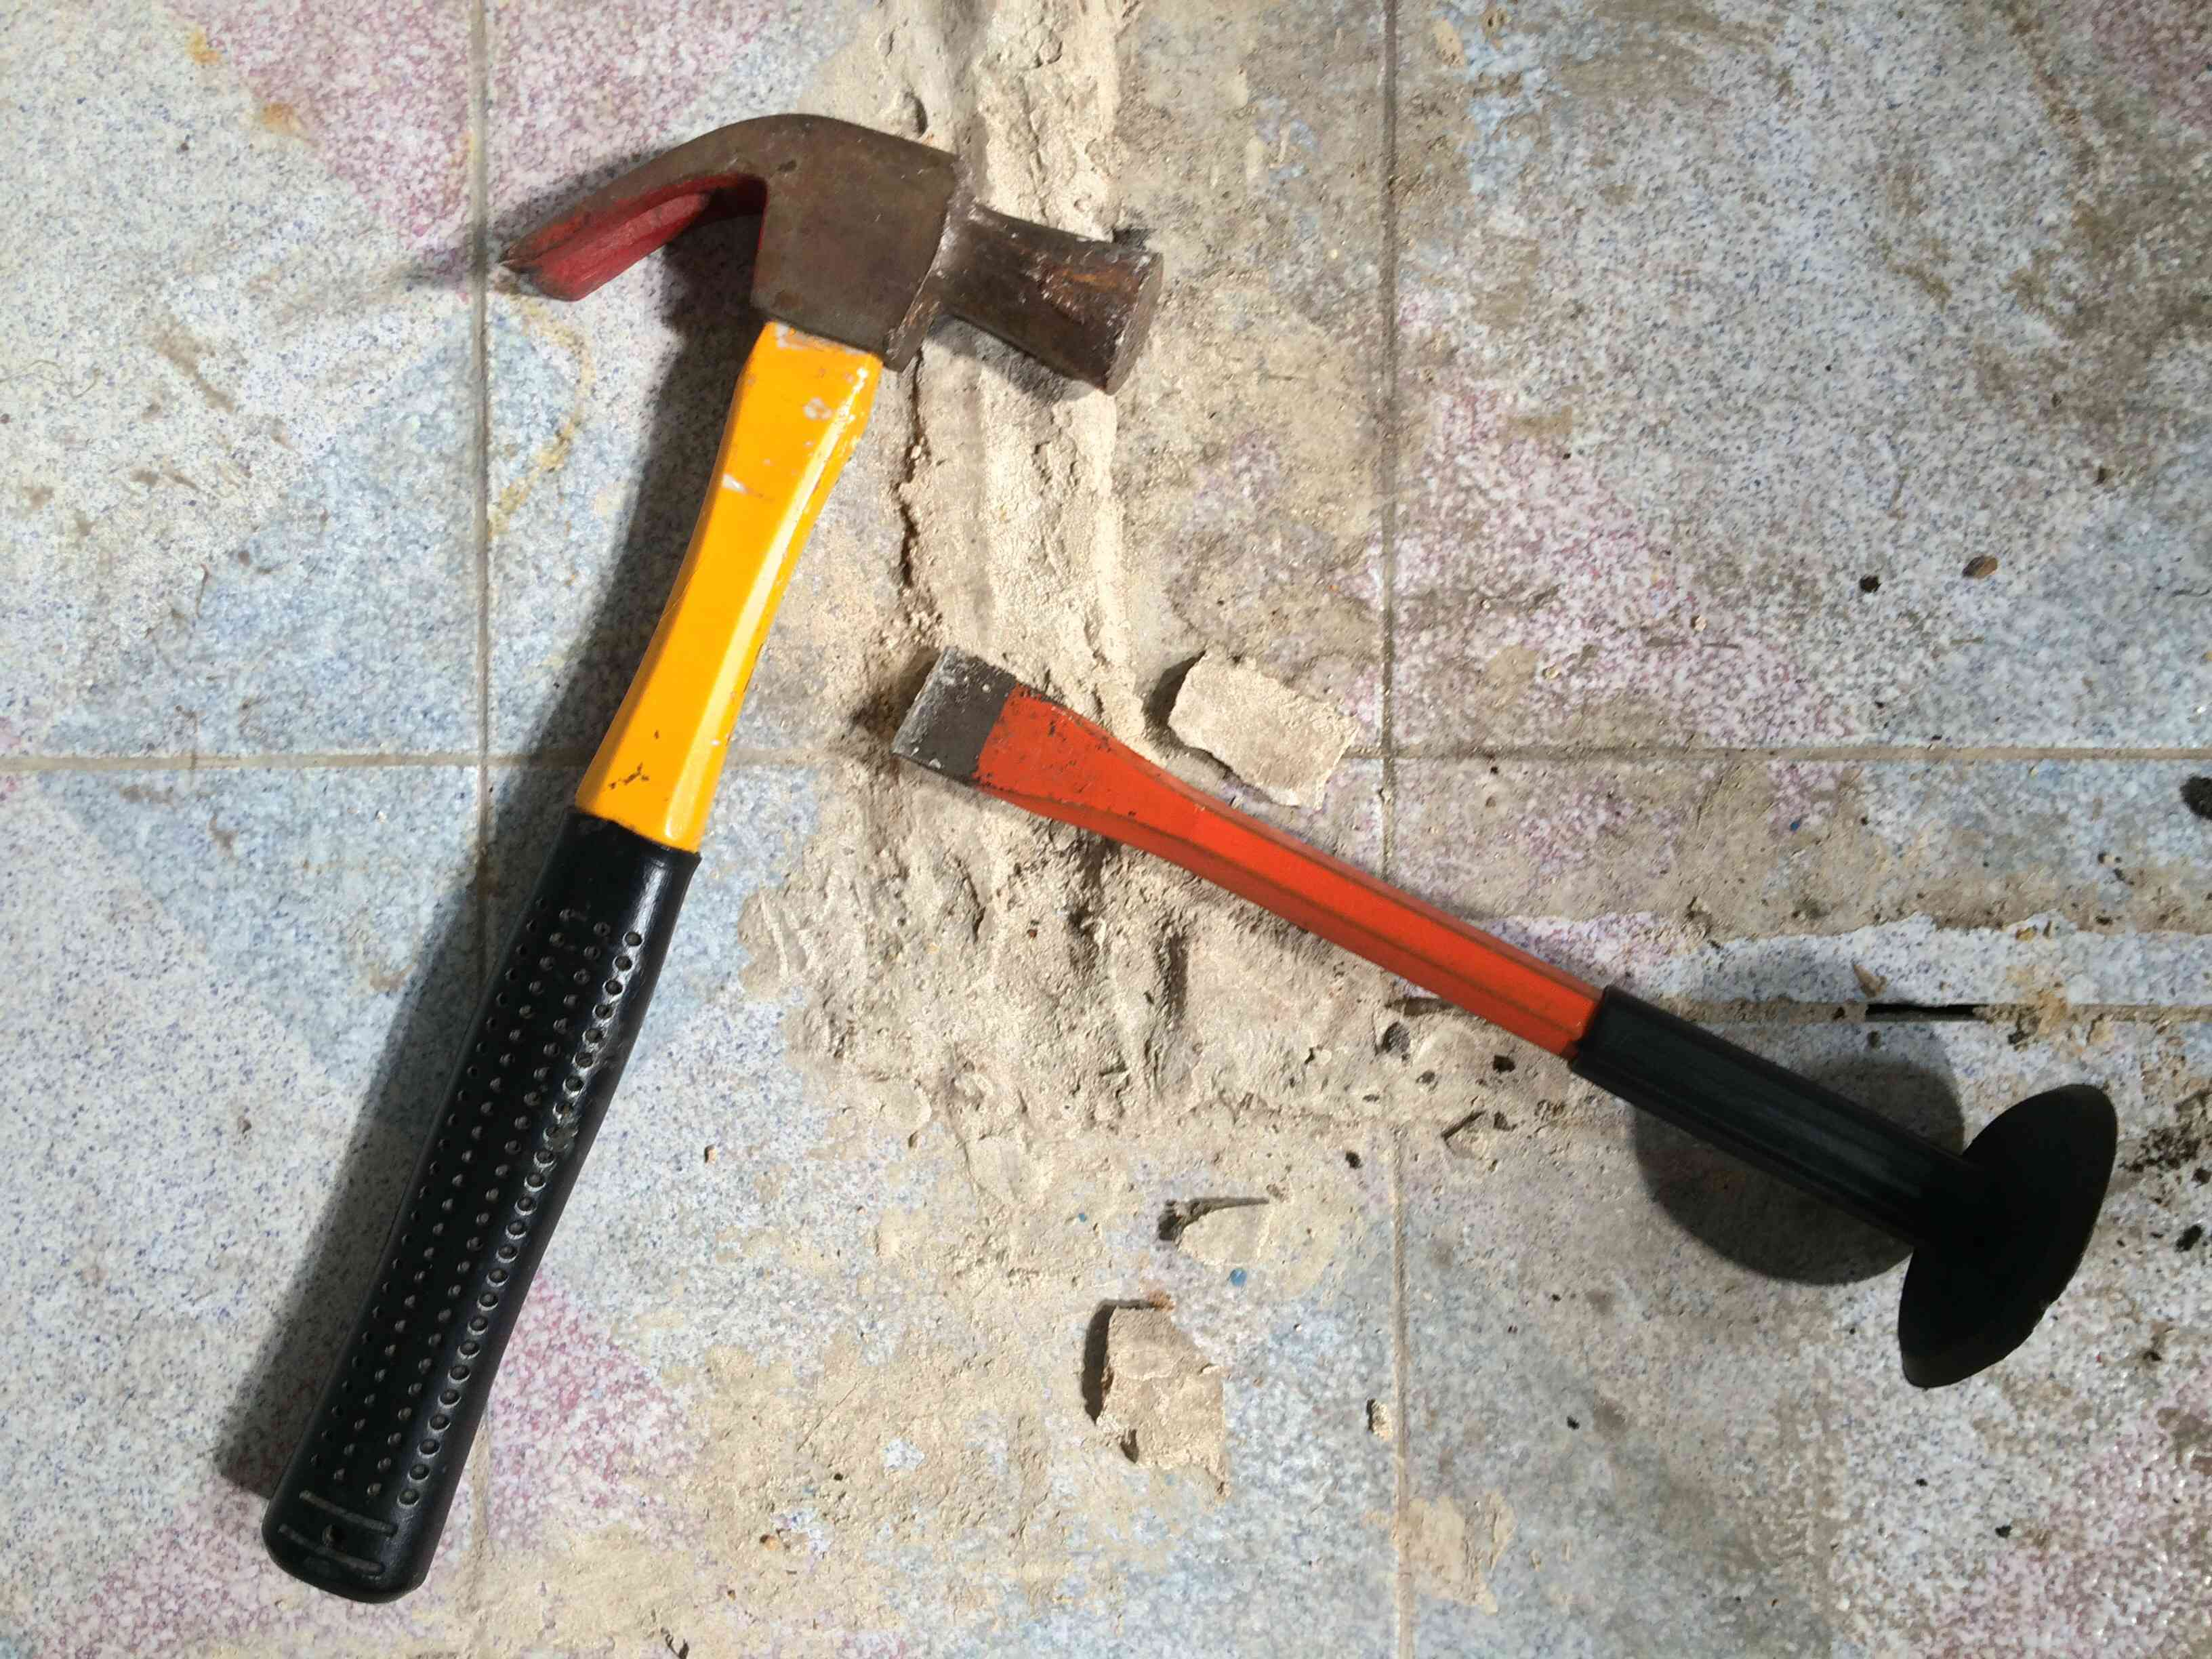 Hammer and chisel on tile floor